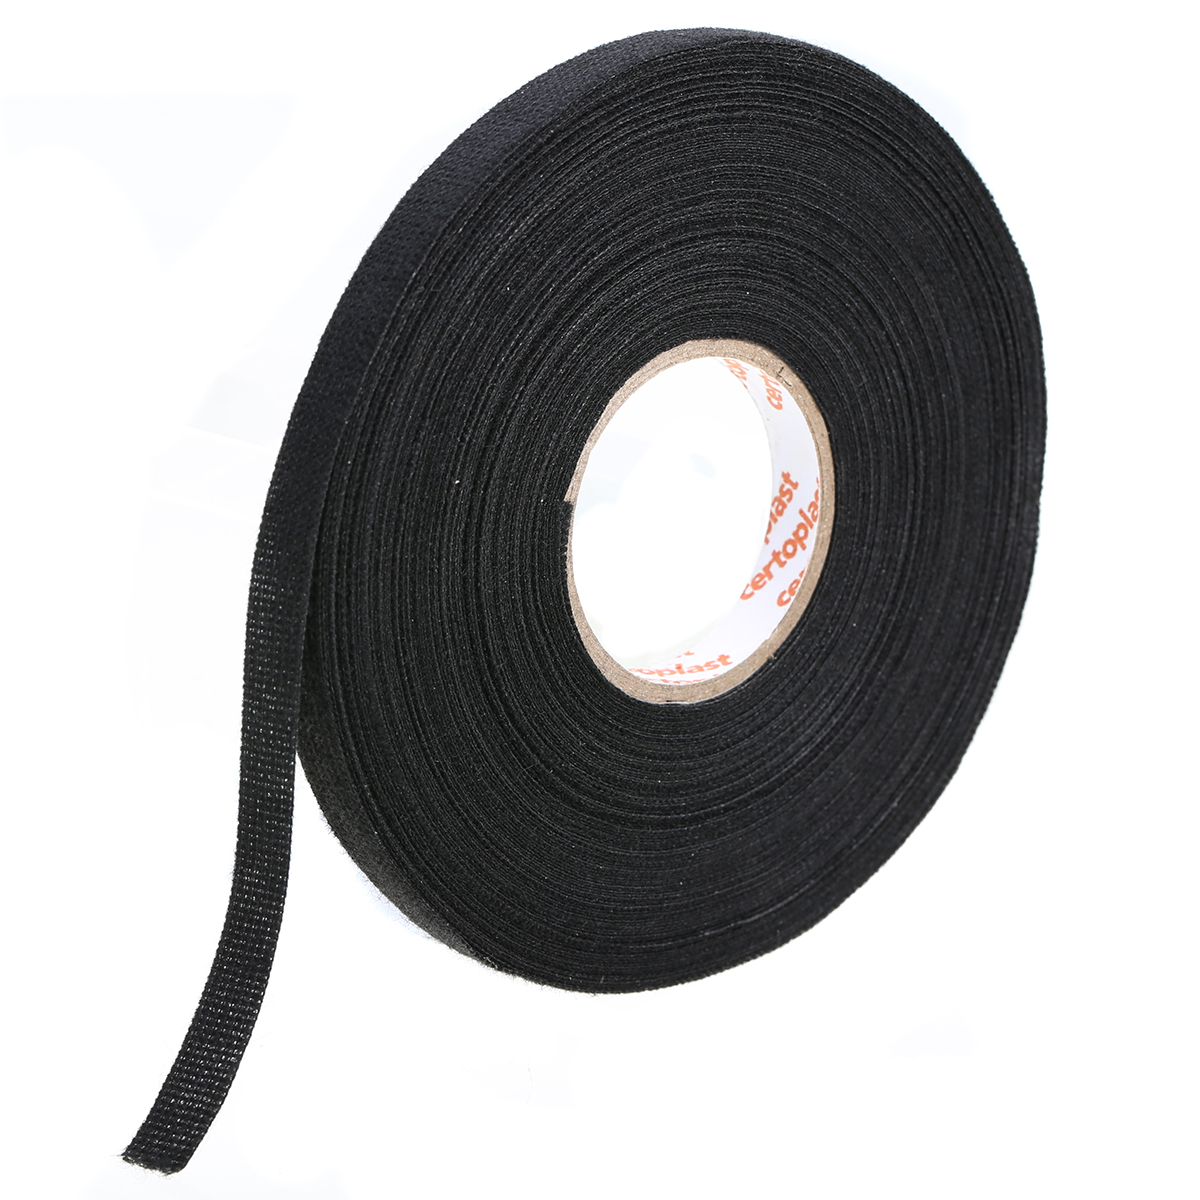 1pc Looms Wiring Harness Adhesive Tapes Black Cloth Fabric Tape Durable  Cable Protection Accessories for Cars